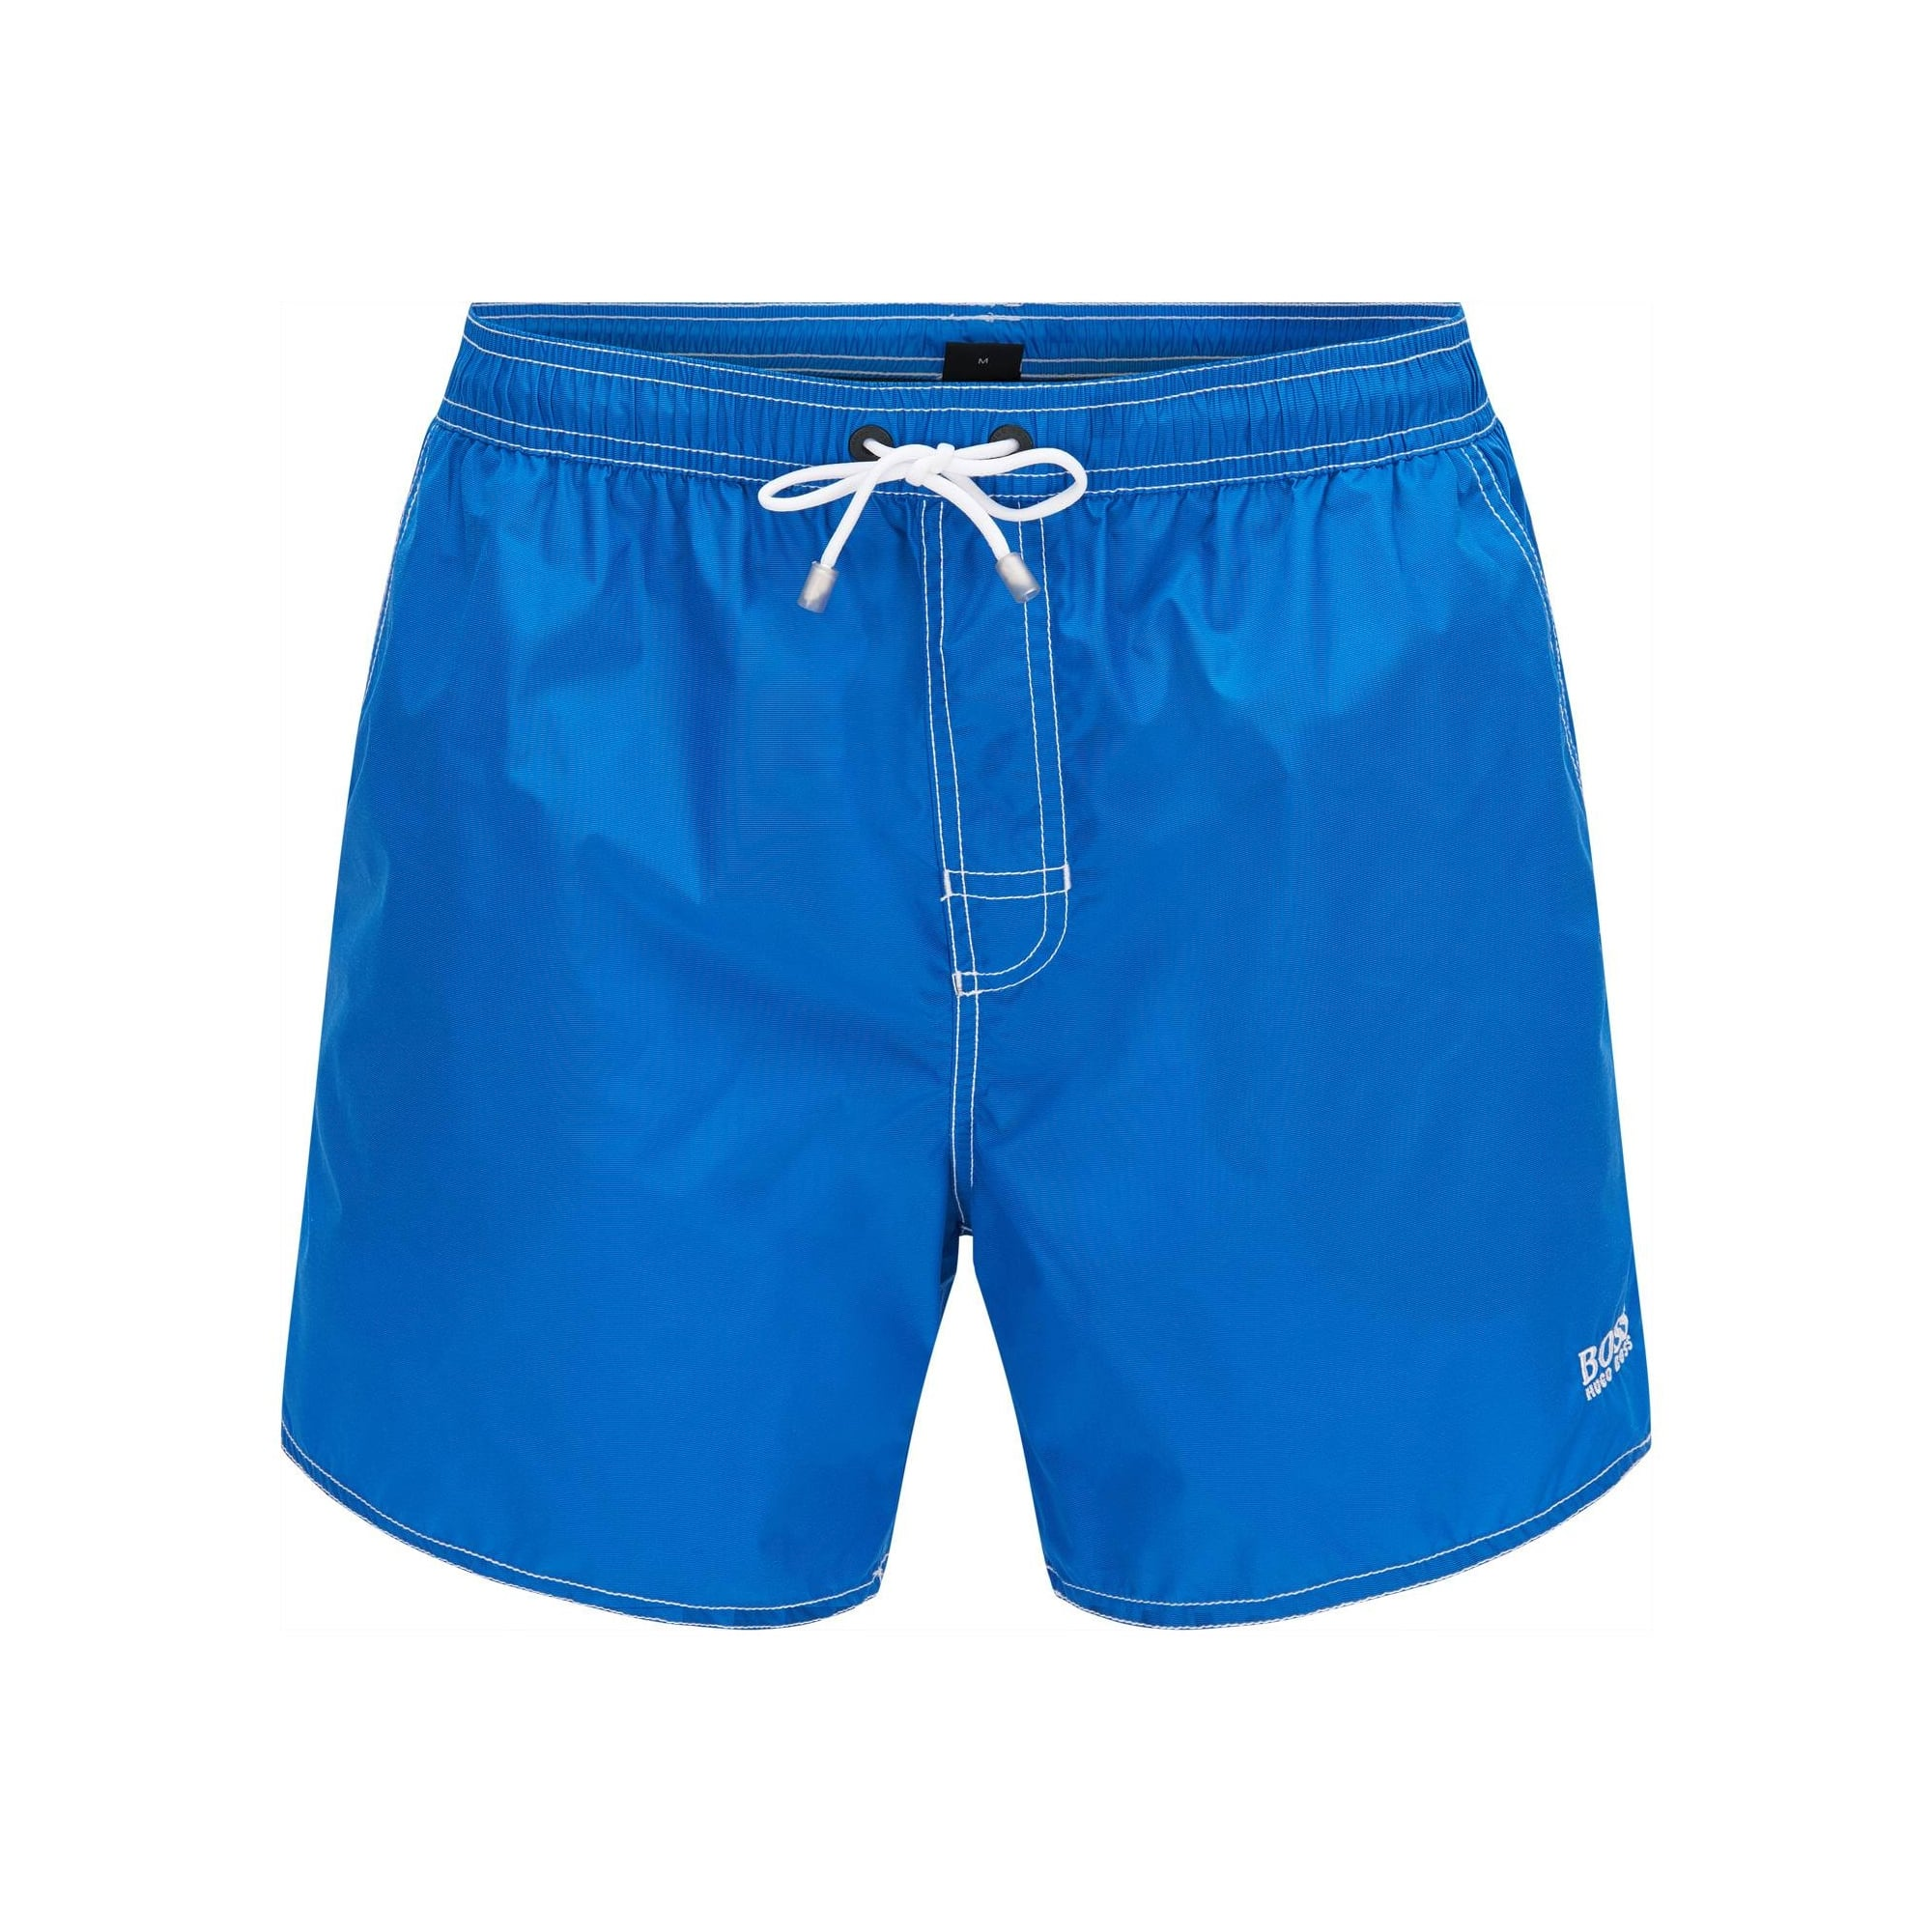 446e298ab04e6 Hugo Boss Lobster | Quick Dry Bright Blue Swim Shorts